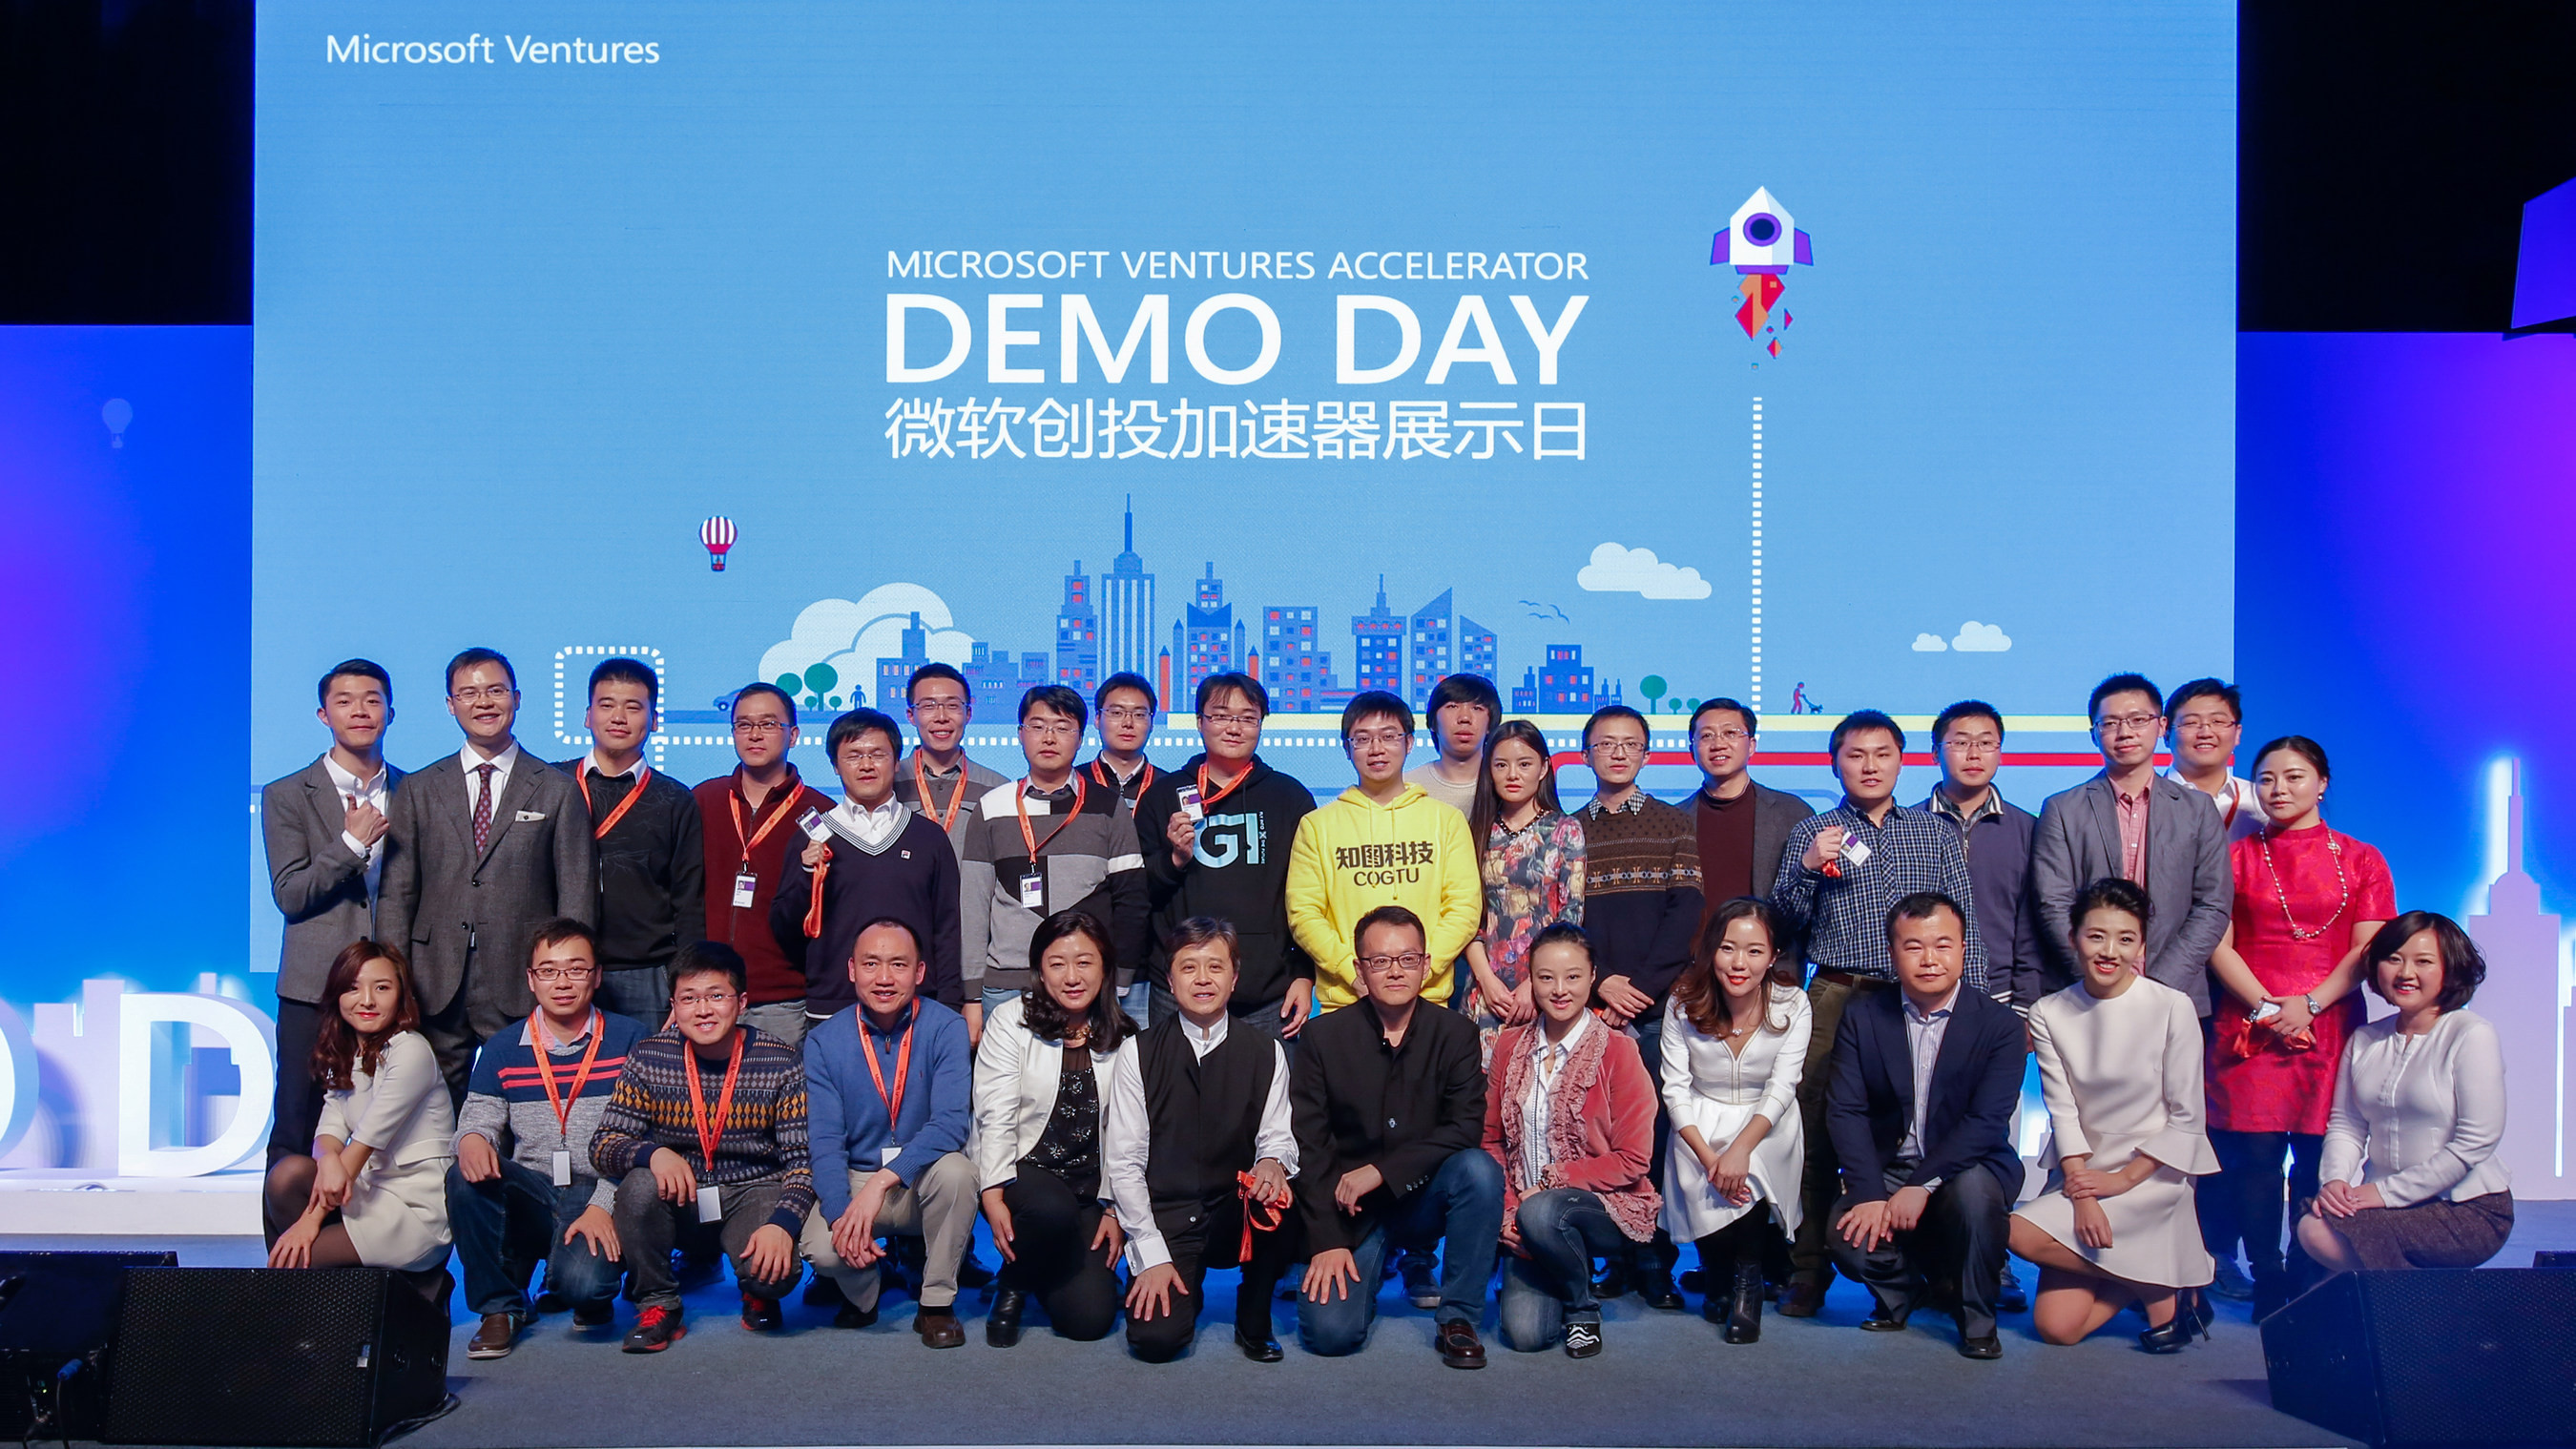 Microsoft Ventures Accelerator Jump Starts the Development of 100 Startups in China The Total Valuation of ...